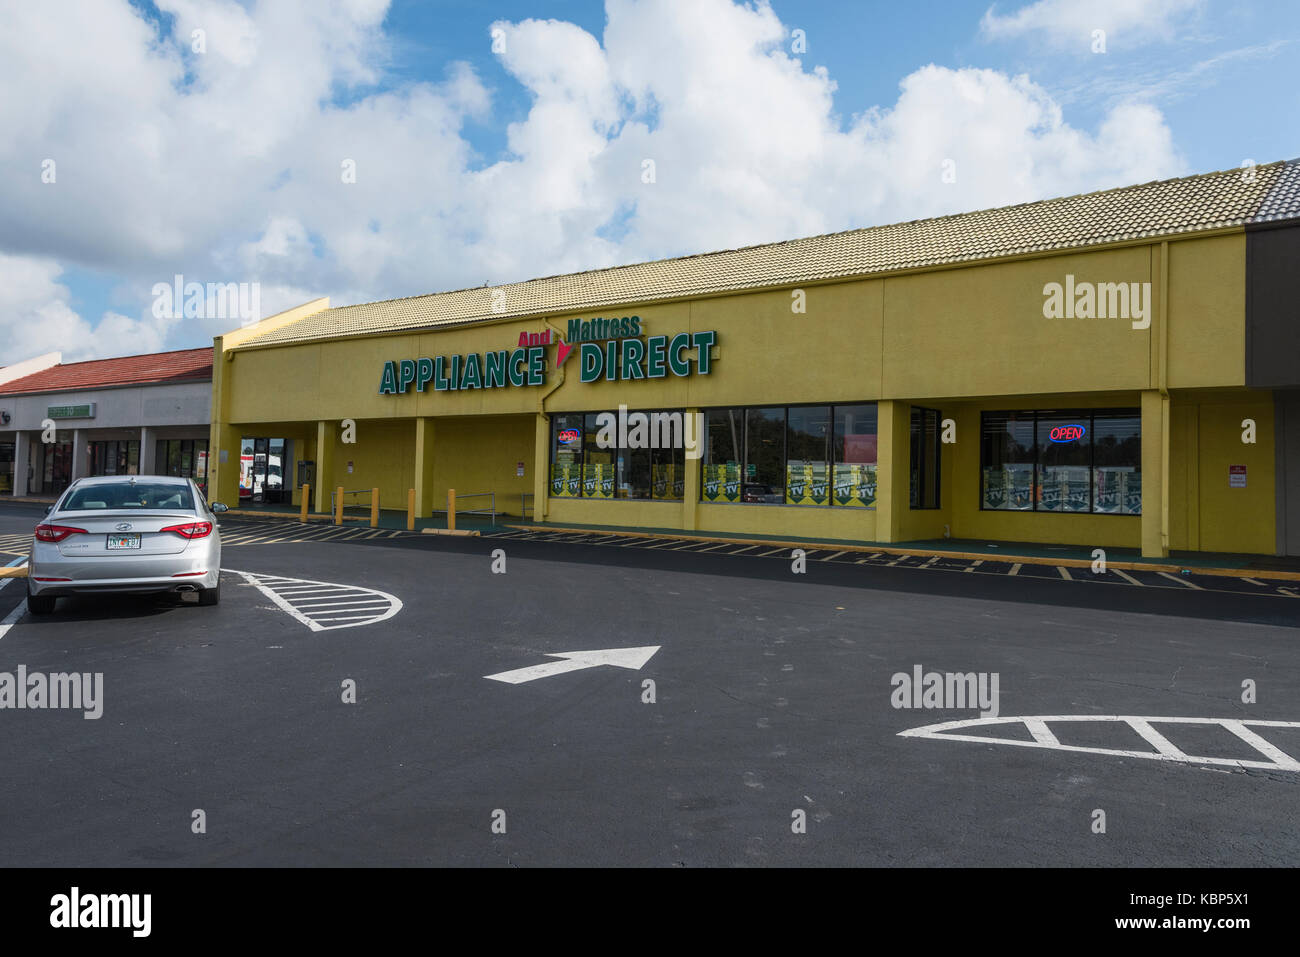 Appliance Direct located in Fruitland Park, Florida USA - Stock Image